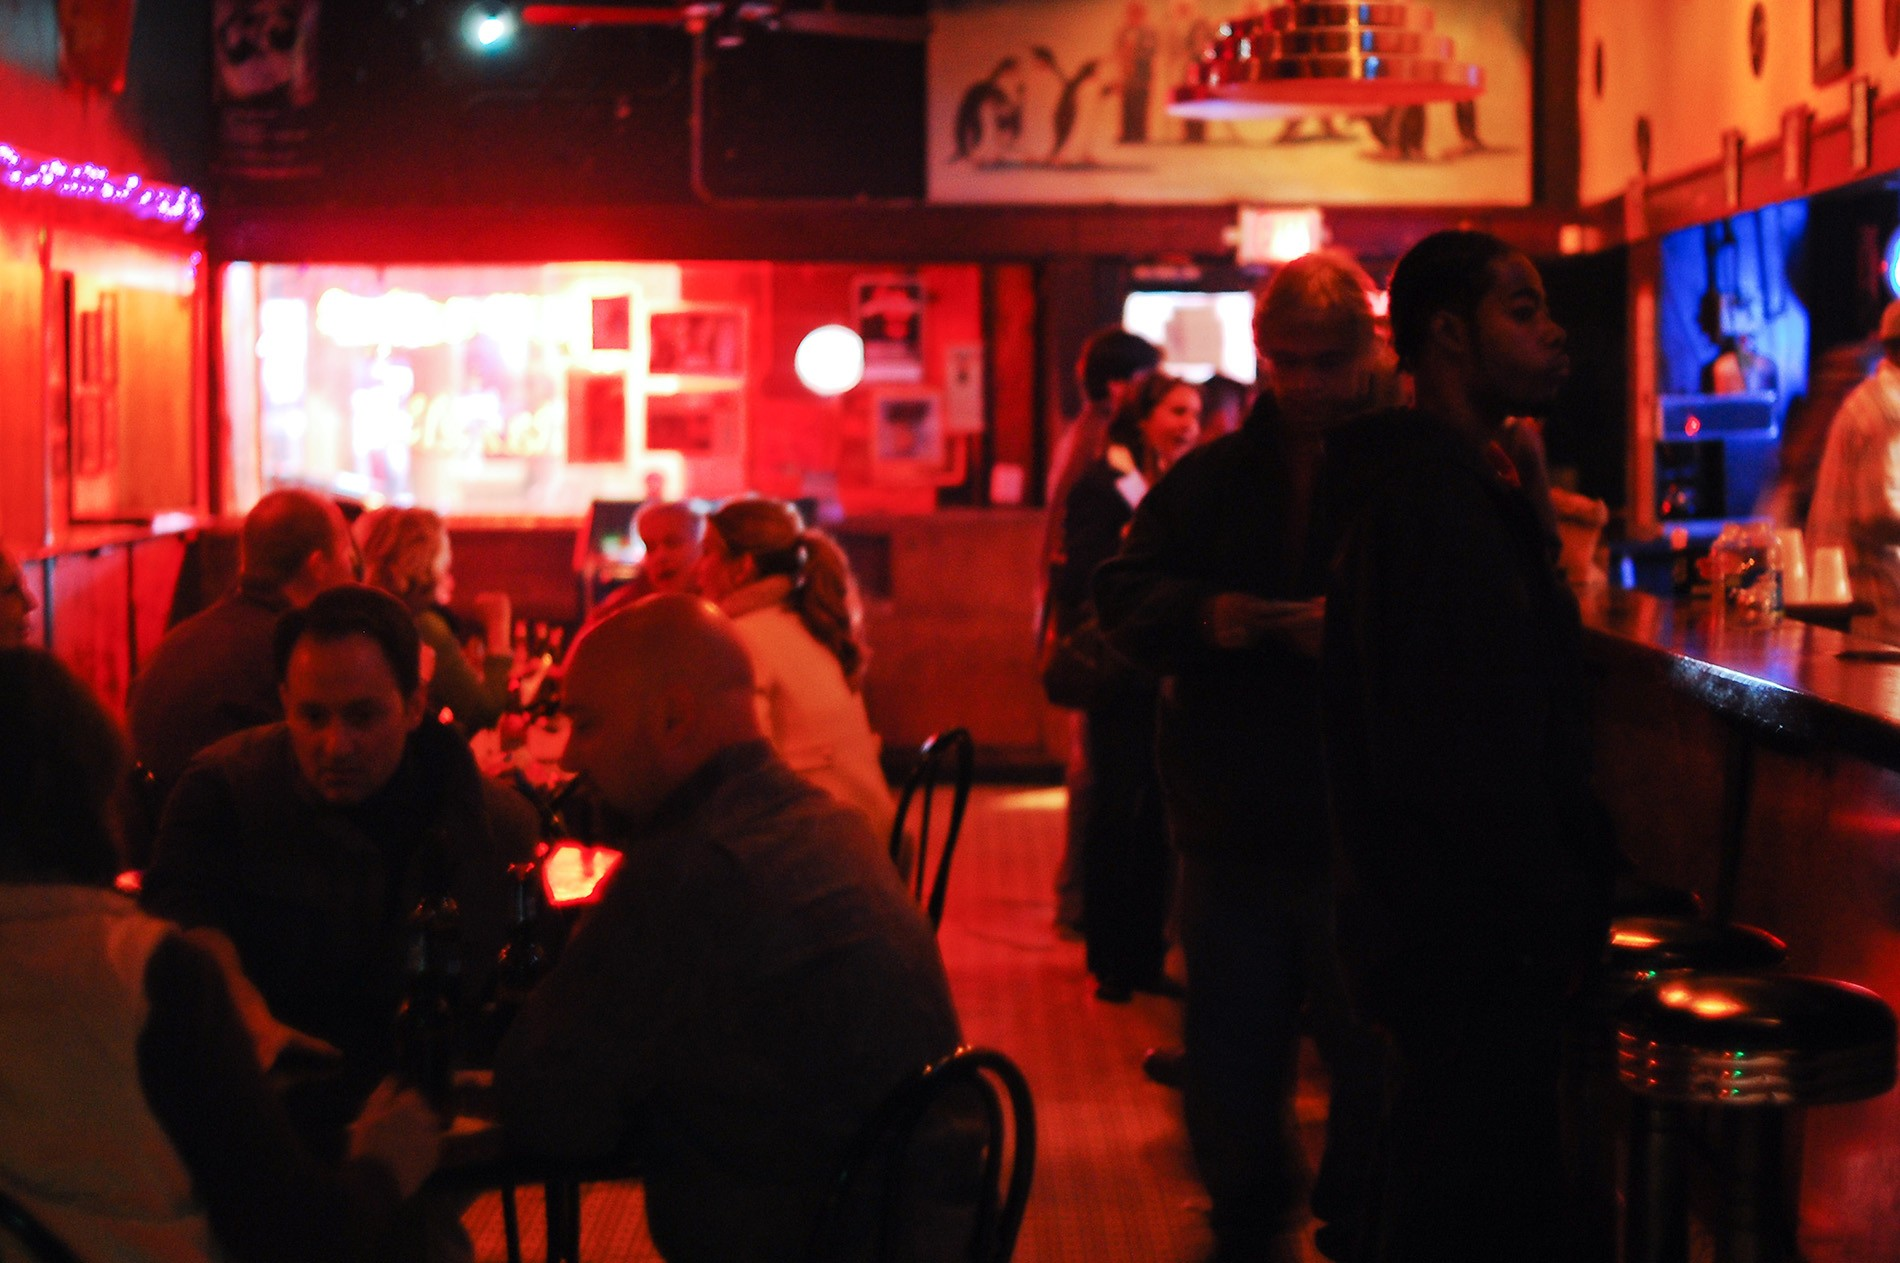 The bar. Photo via Flickr user Eric Allix Rogers